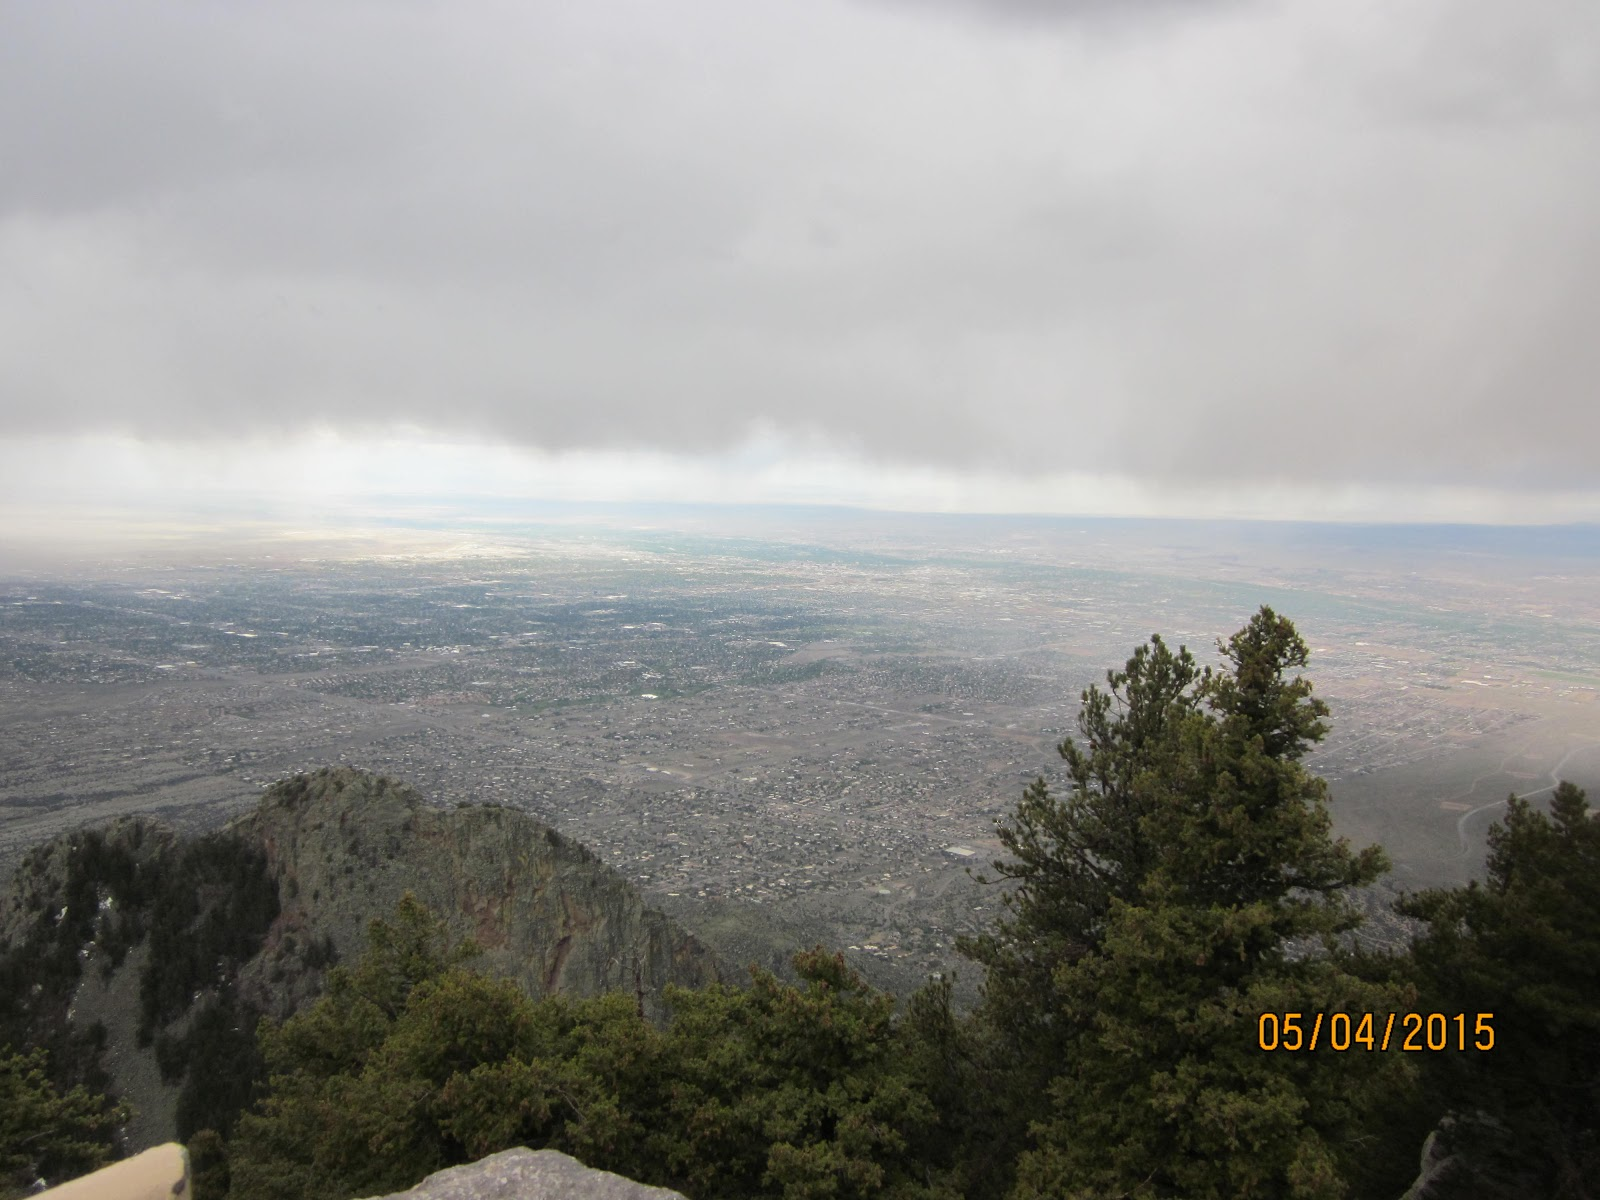 Sandia Crest bike climb - view to plains below from viewpoint